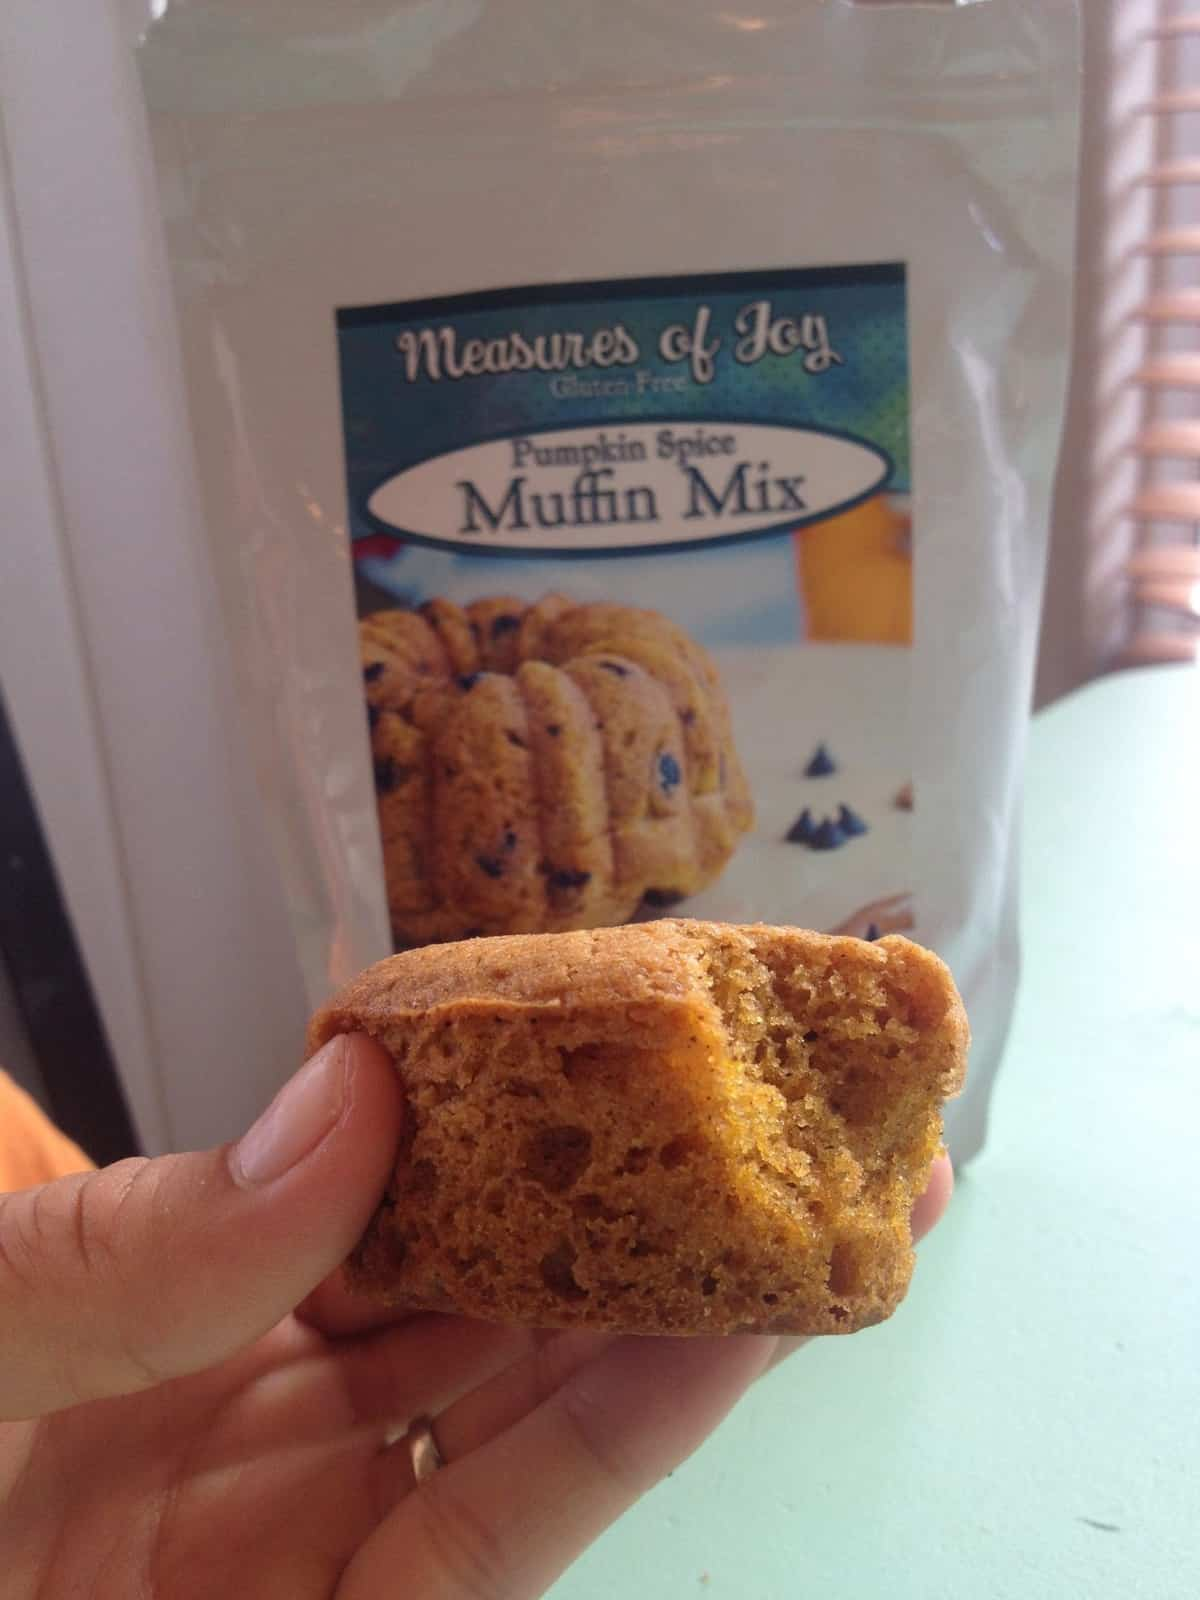 Gluten Free Product Review: Measures of Joy Baking Mix